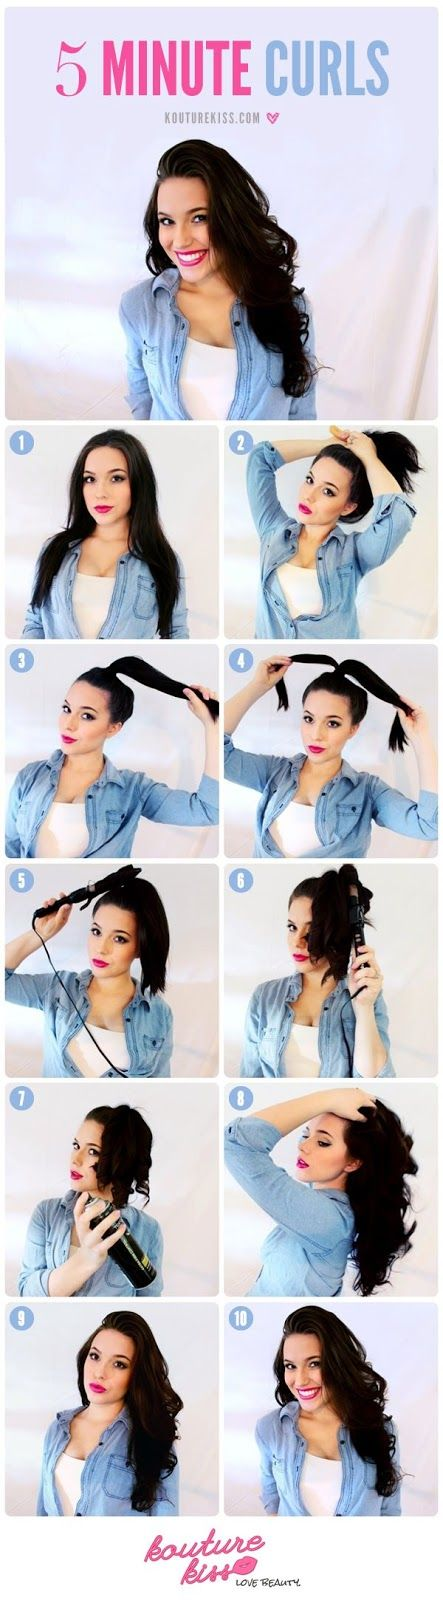 how to convert stright to curly hair in 5 minute